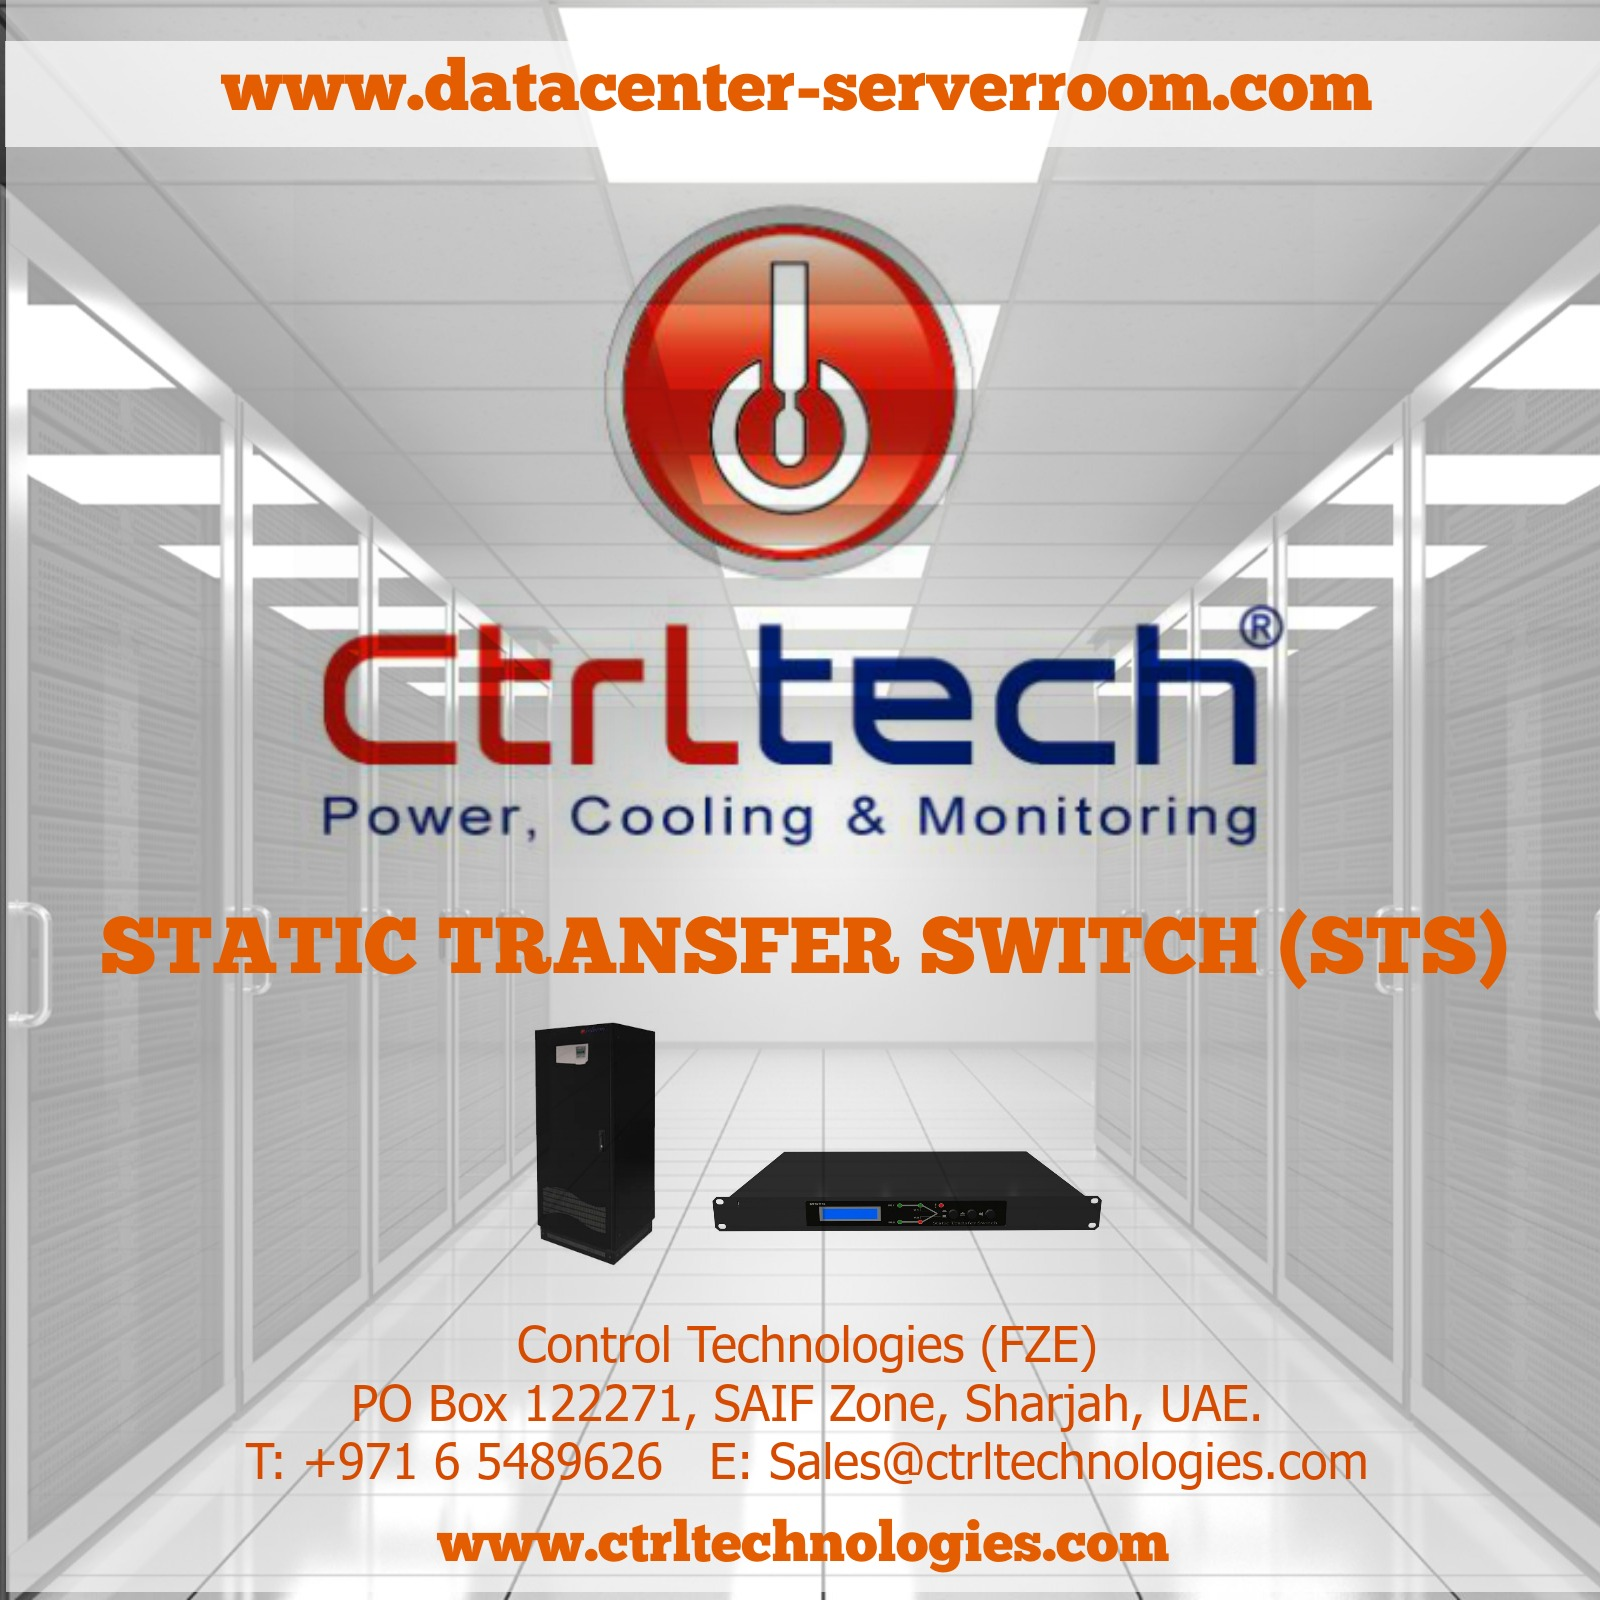 Static transfer switch STS for server room and Data center (datacenter).jpg